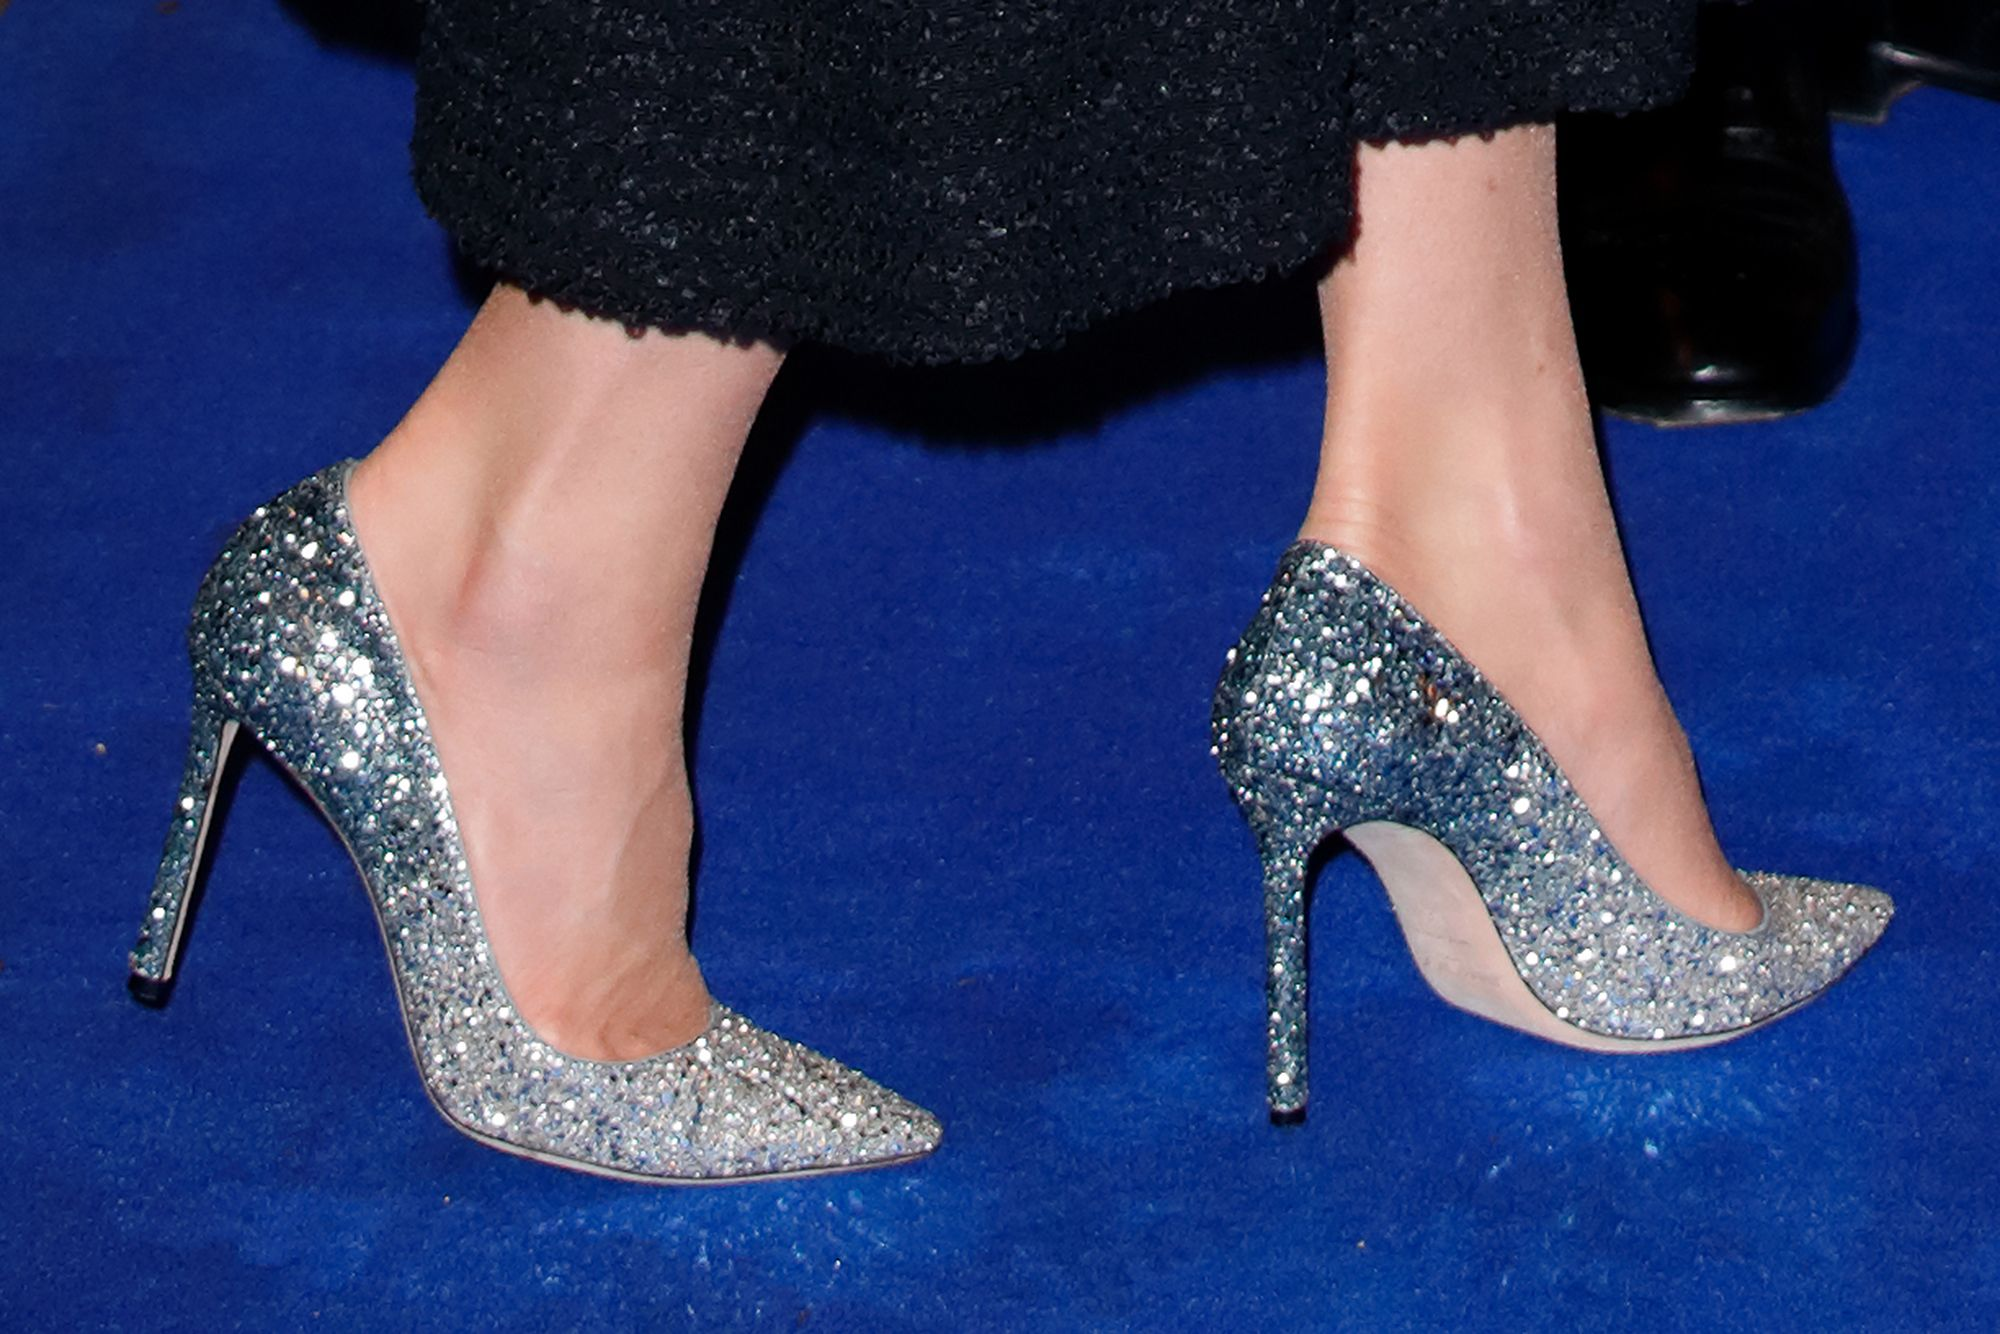 Kate Middleton Dazzles The Night Away In Tweed Dress And Sparkly Shoes